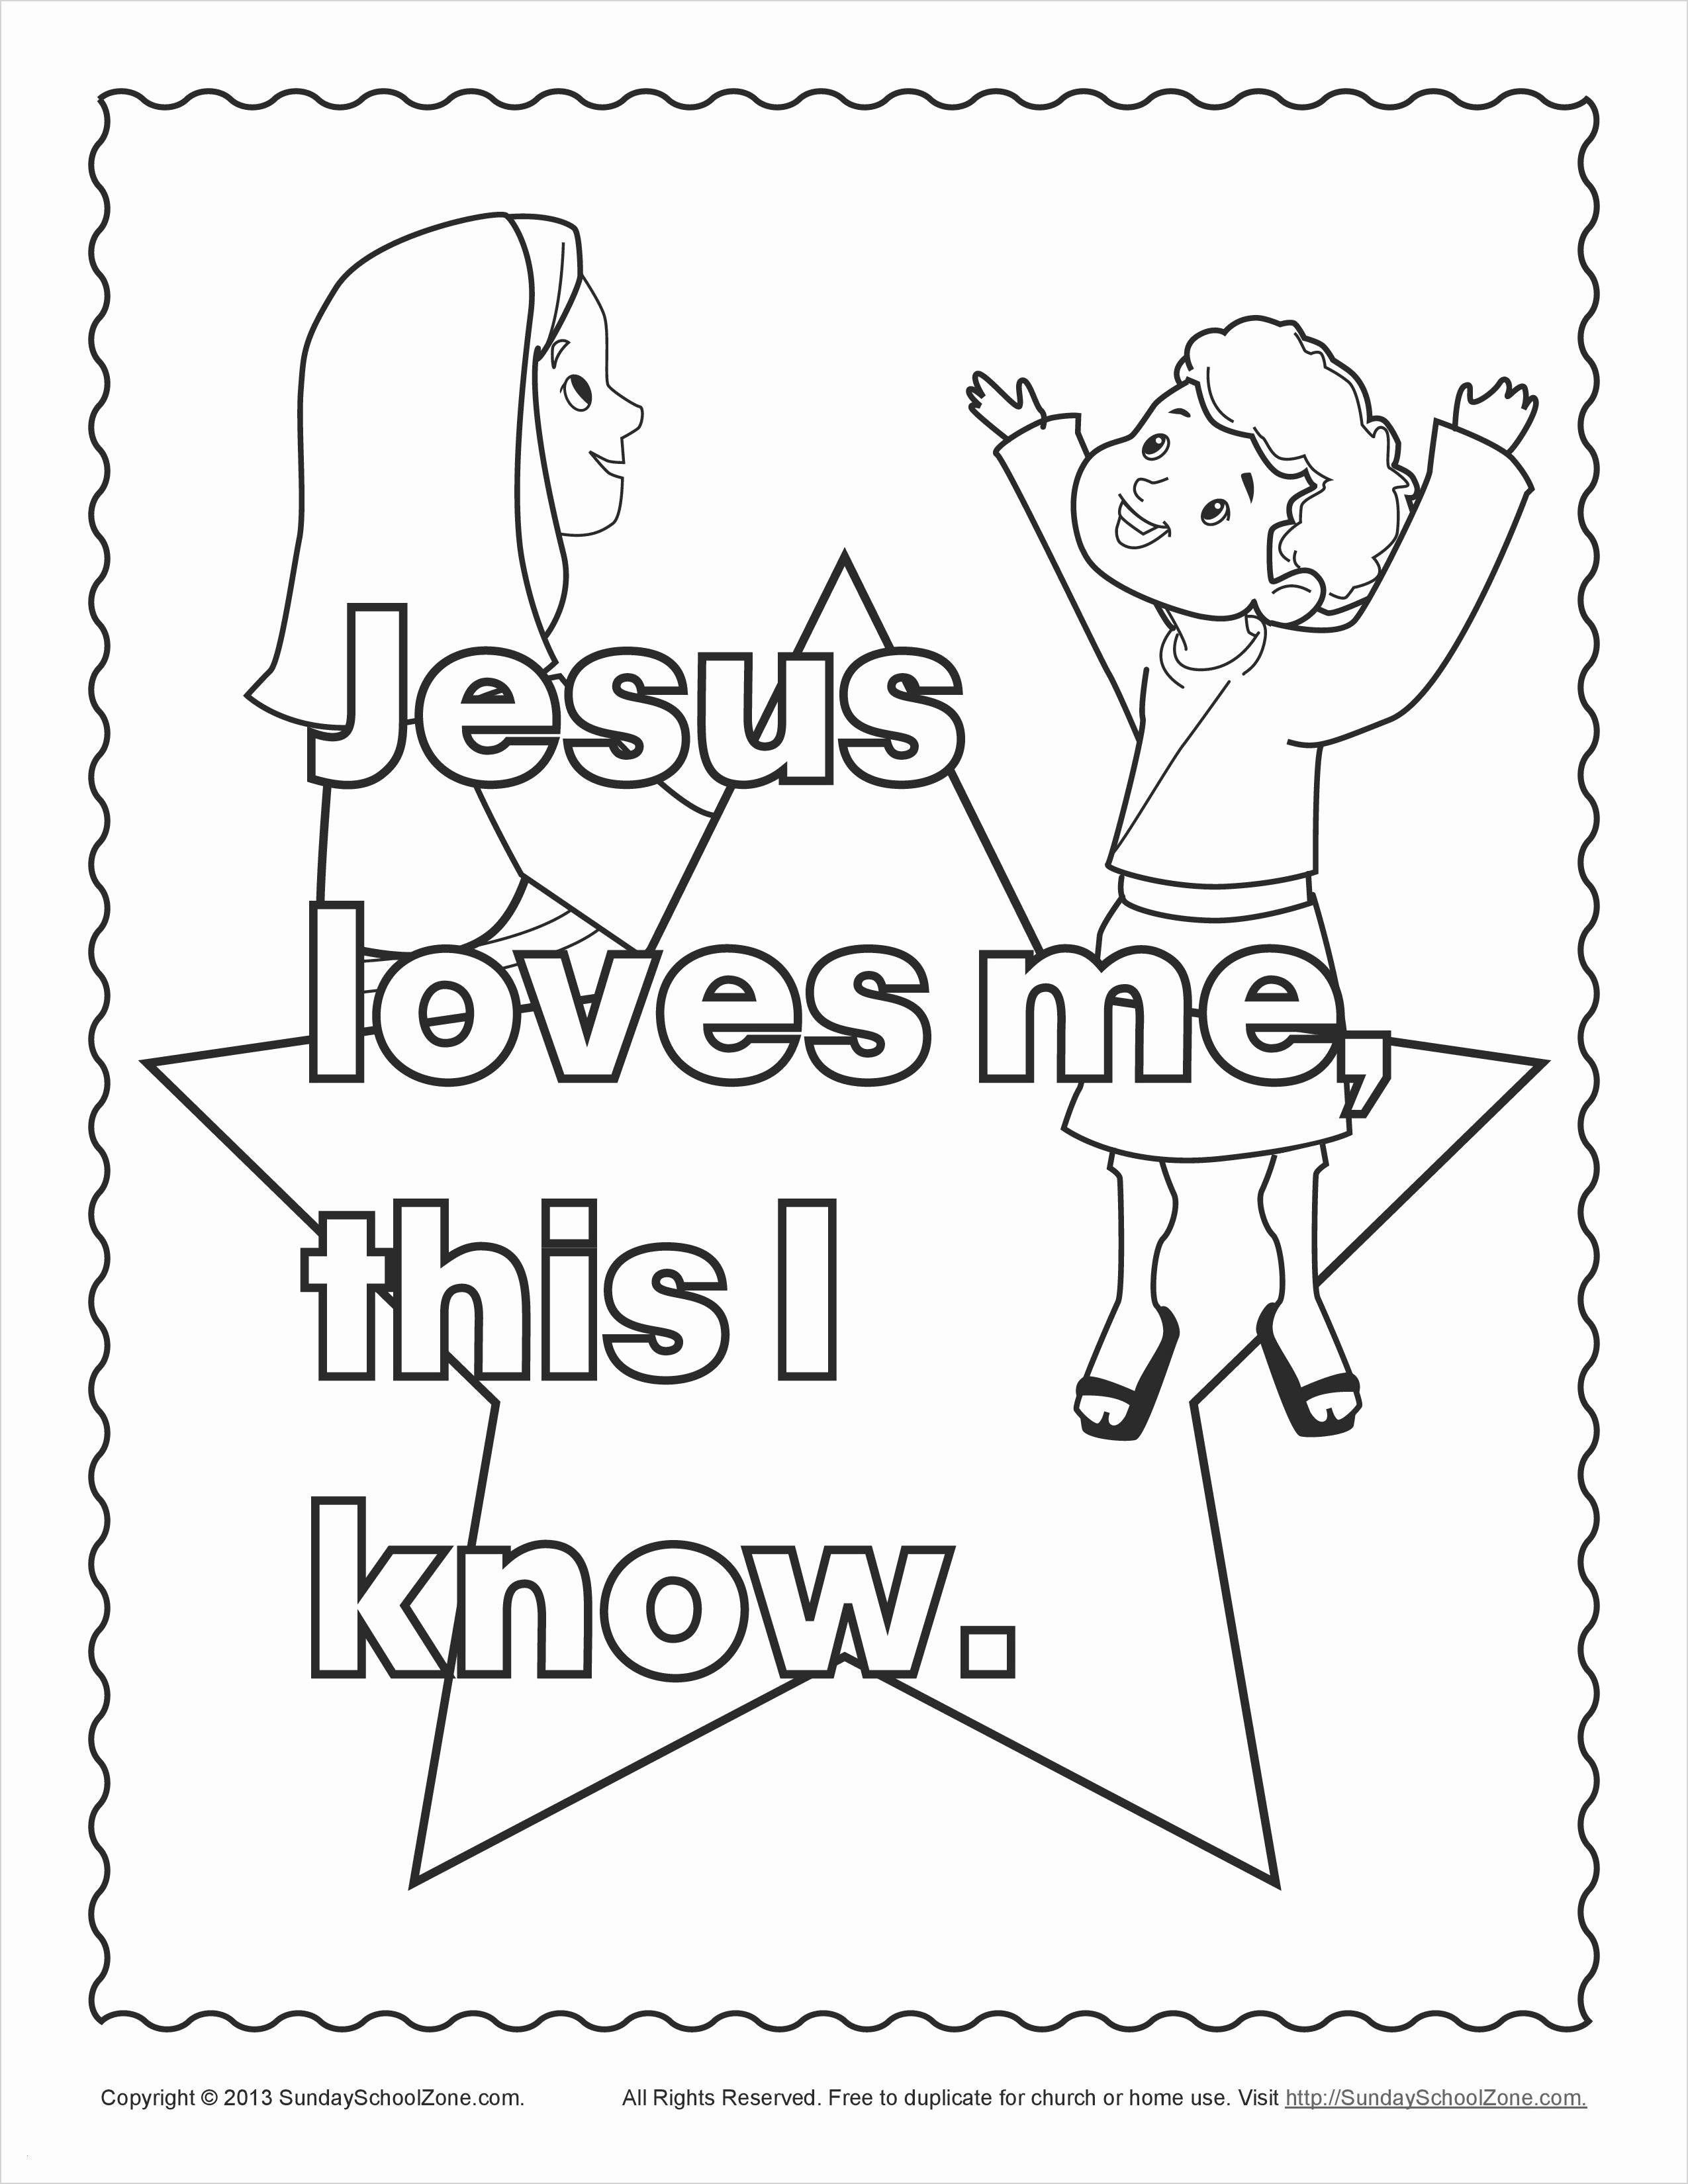 Kids Coloring Pages For Church Awesome Coloring Ideas Incredible Sunday School Coloring P In 2020 Jesus Coloring Pages Sunday School Coloring Pages Love Coloring Pages